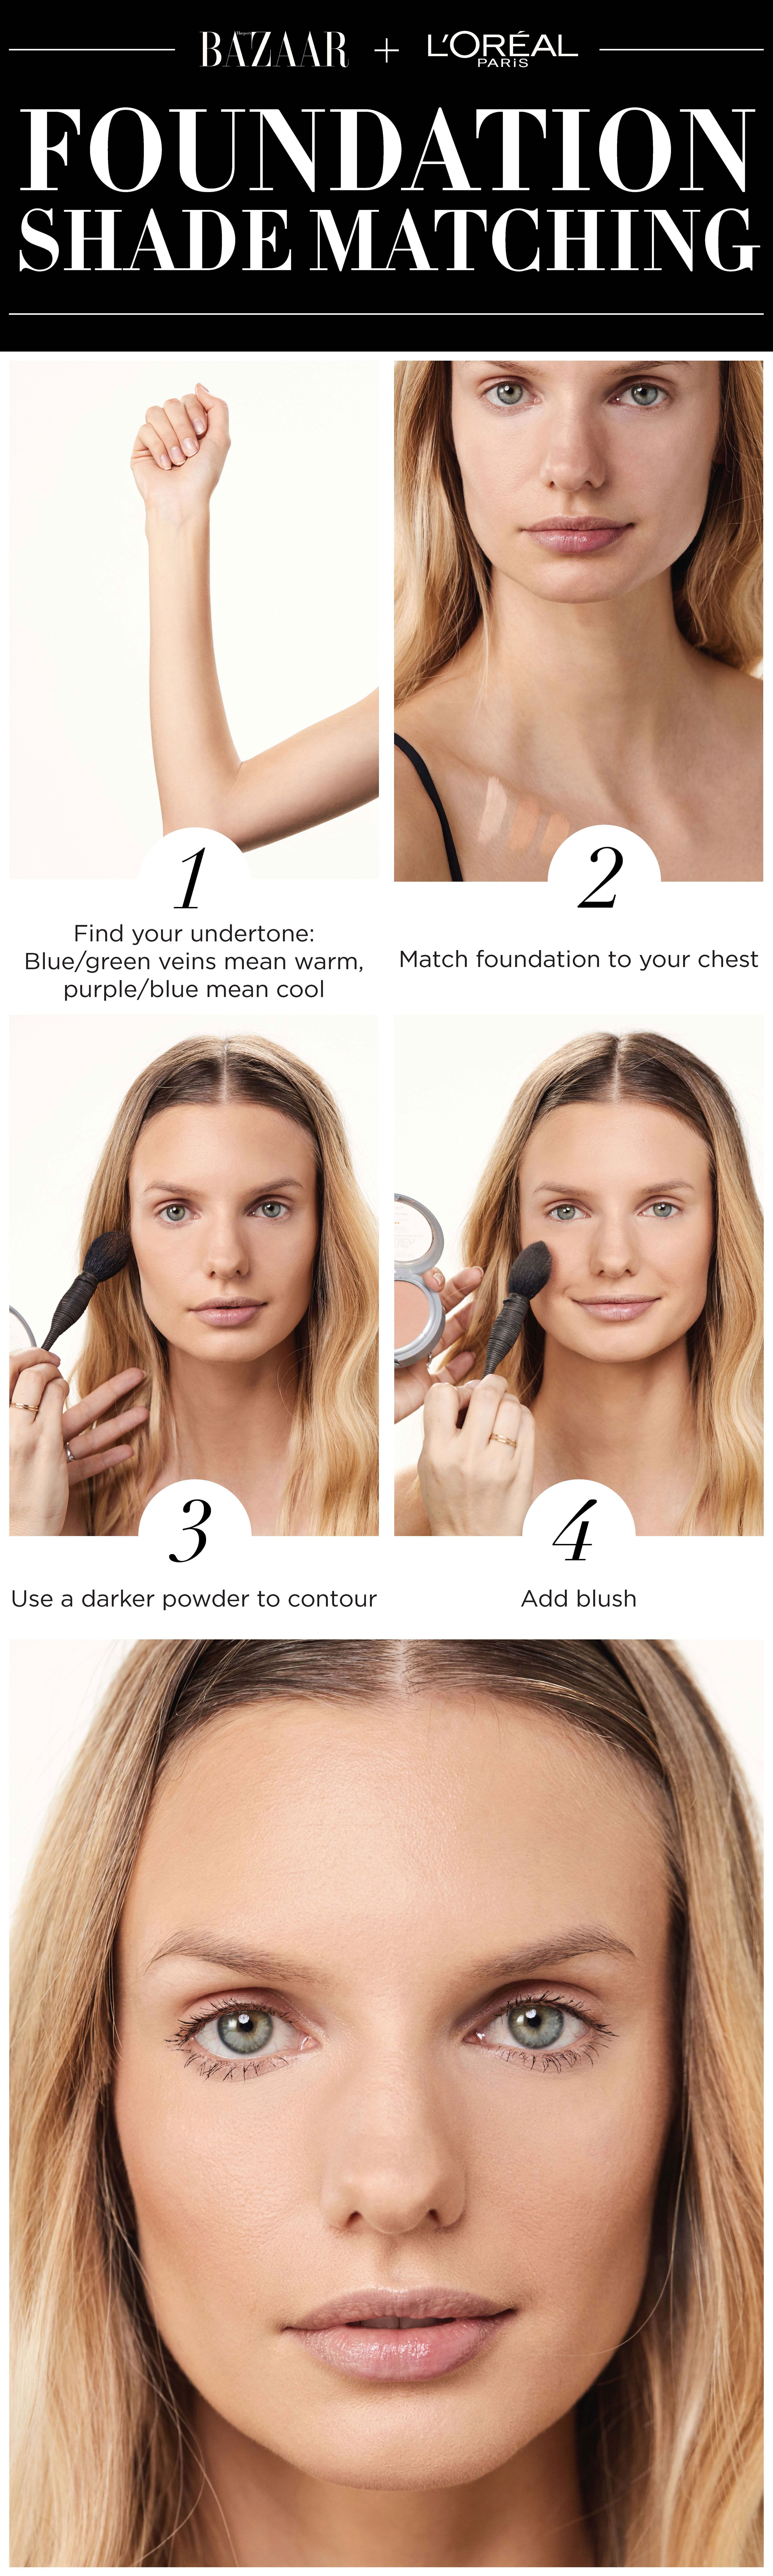 to wear - Your find perfect foundation shade video